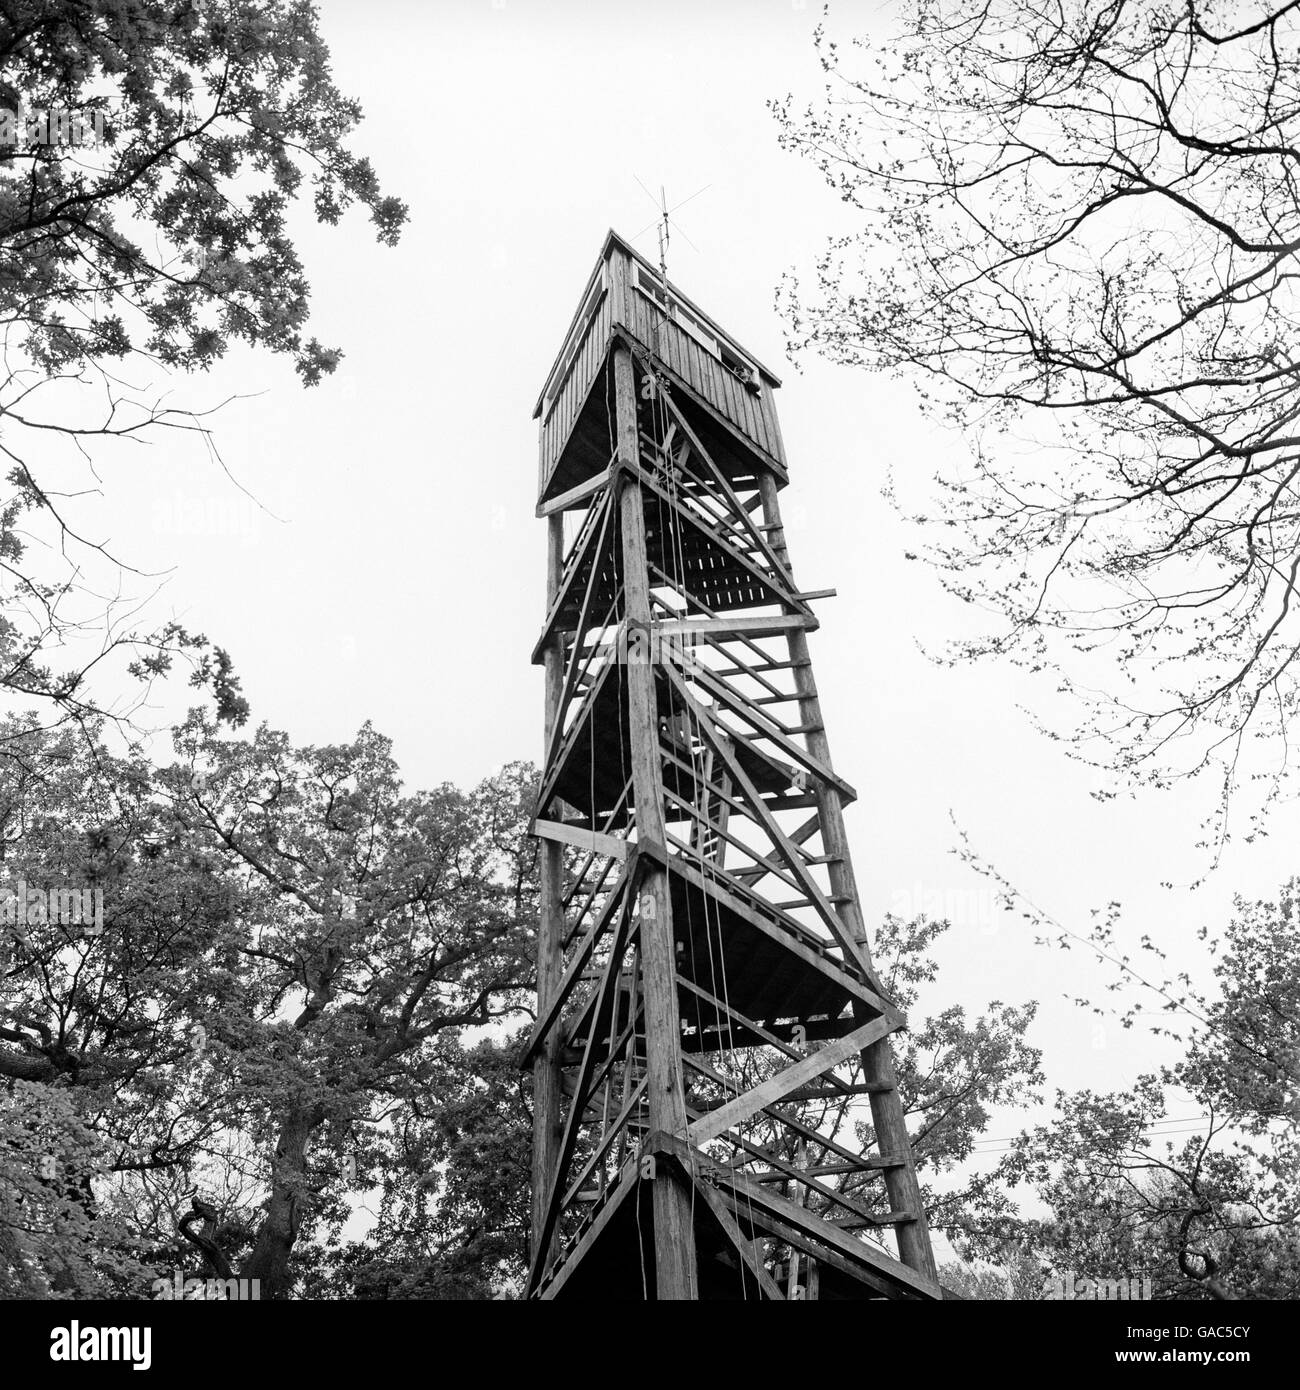 Environment - New Forest Tower - Stock Image